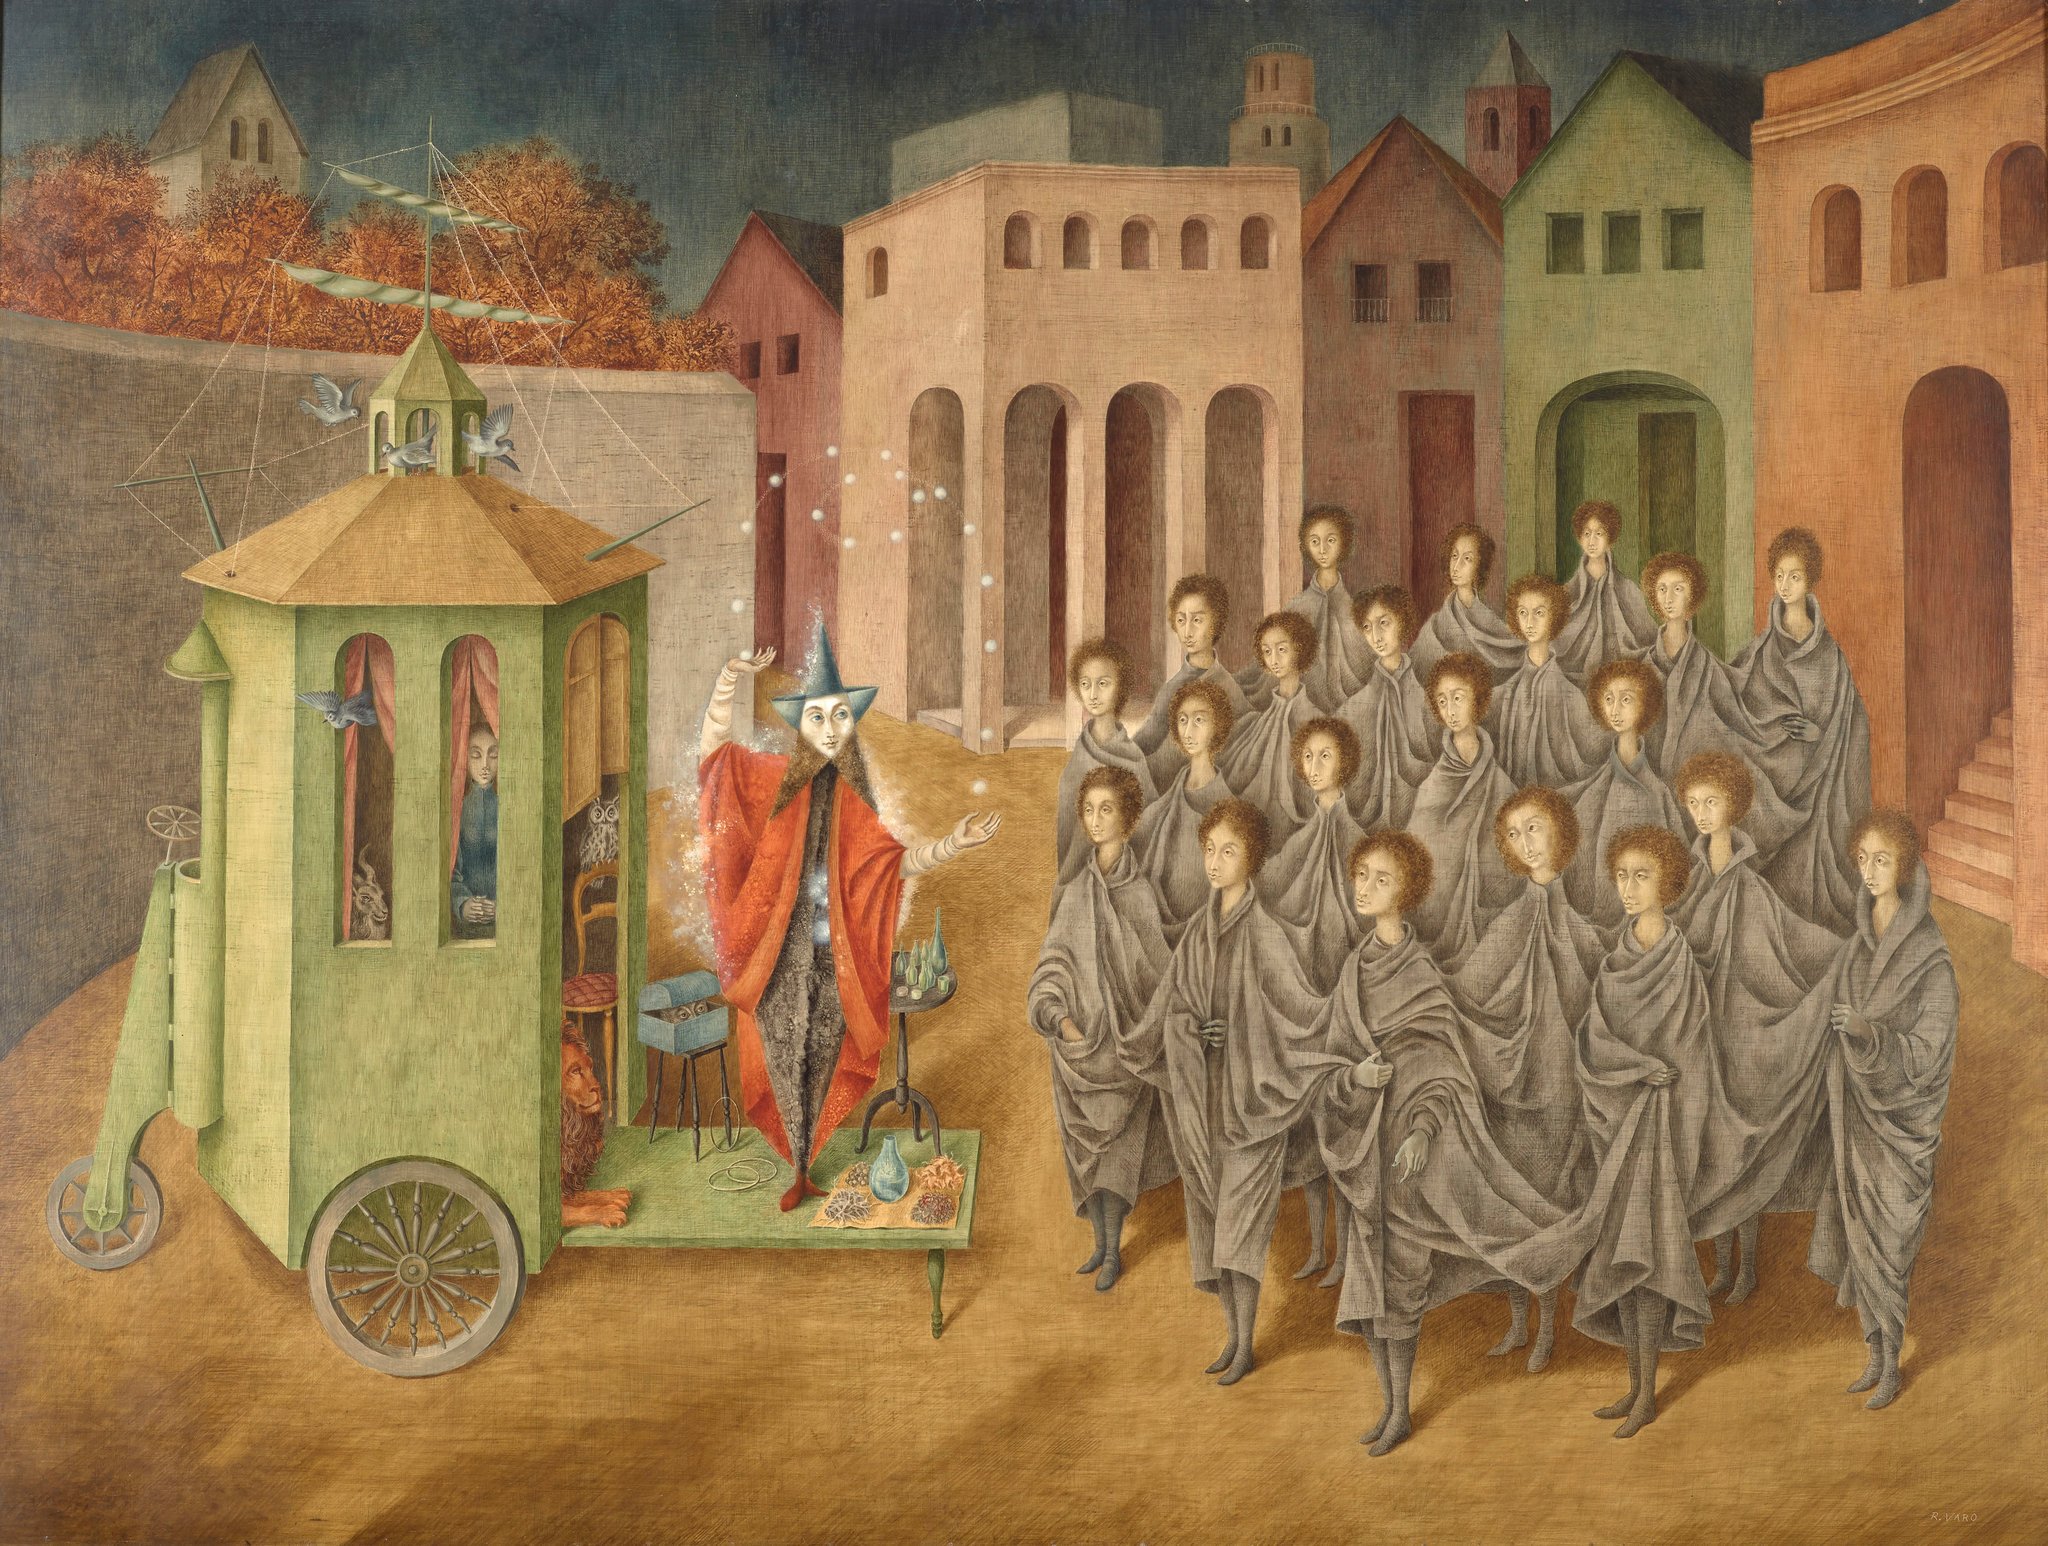 """The Juggler (The Magician),"" 1956, will be the first painting to enter the collection by the Spanish-born, Mexico City-based Remedios Varo.CreditArtists Rights Society (ARS), New York/VEGAP, Madrid; The Museum of Modern Art"